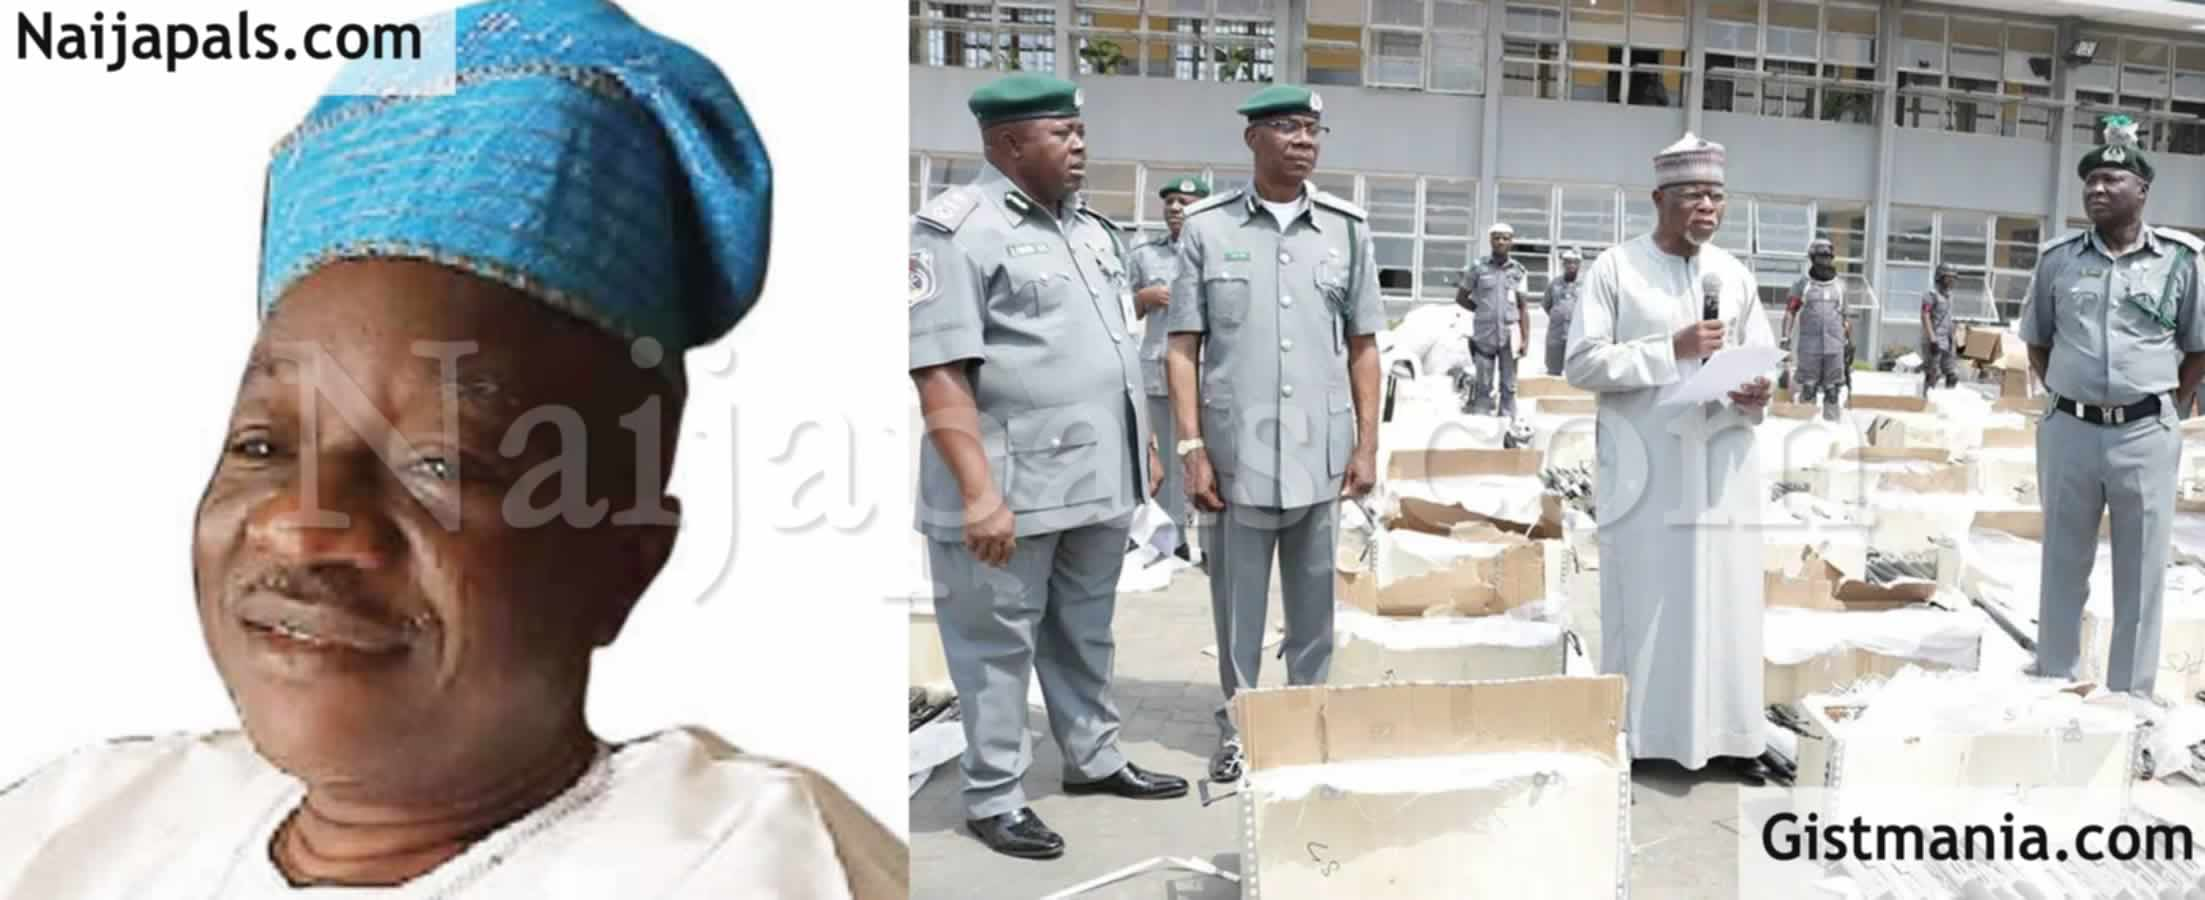 "<img alt='.' class='lazyload' data-src='https://img.gistmania.com/emot/big_laugh.gif' /> <b>""Customs Officers May Soon Begin To Raid Kitchens To Seize Foreign Rice""</b> -Babaloja Of Oyo State"